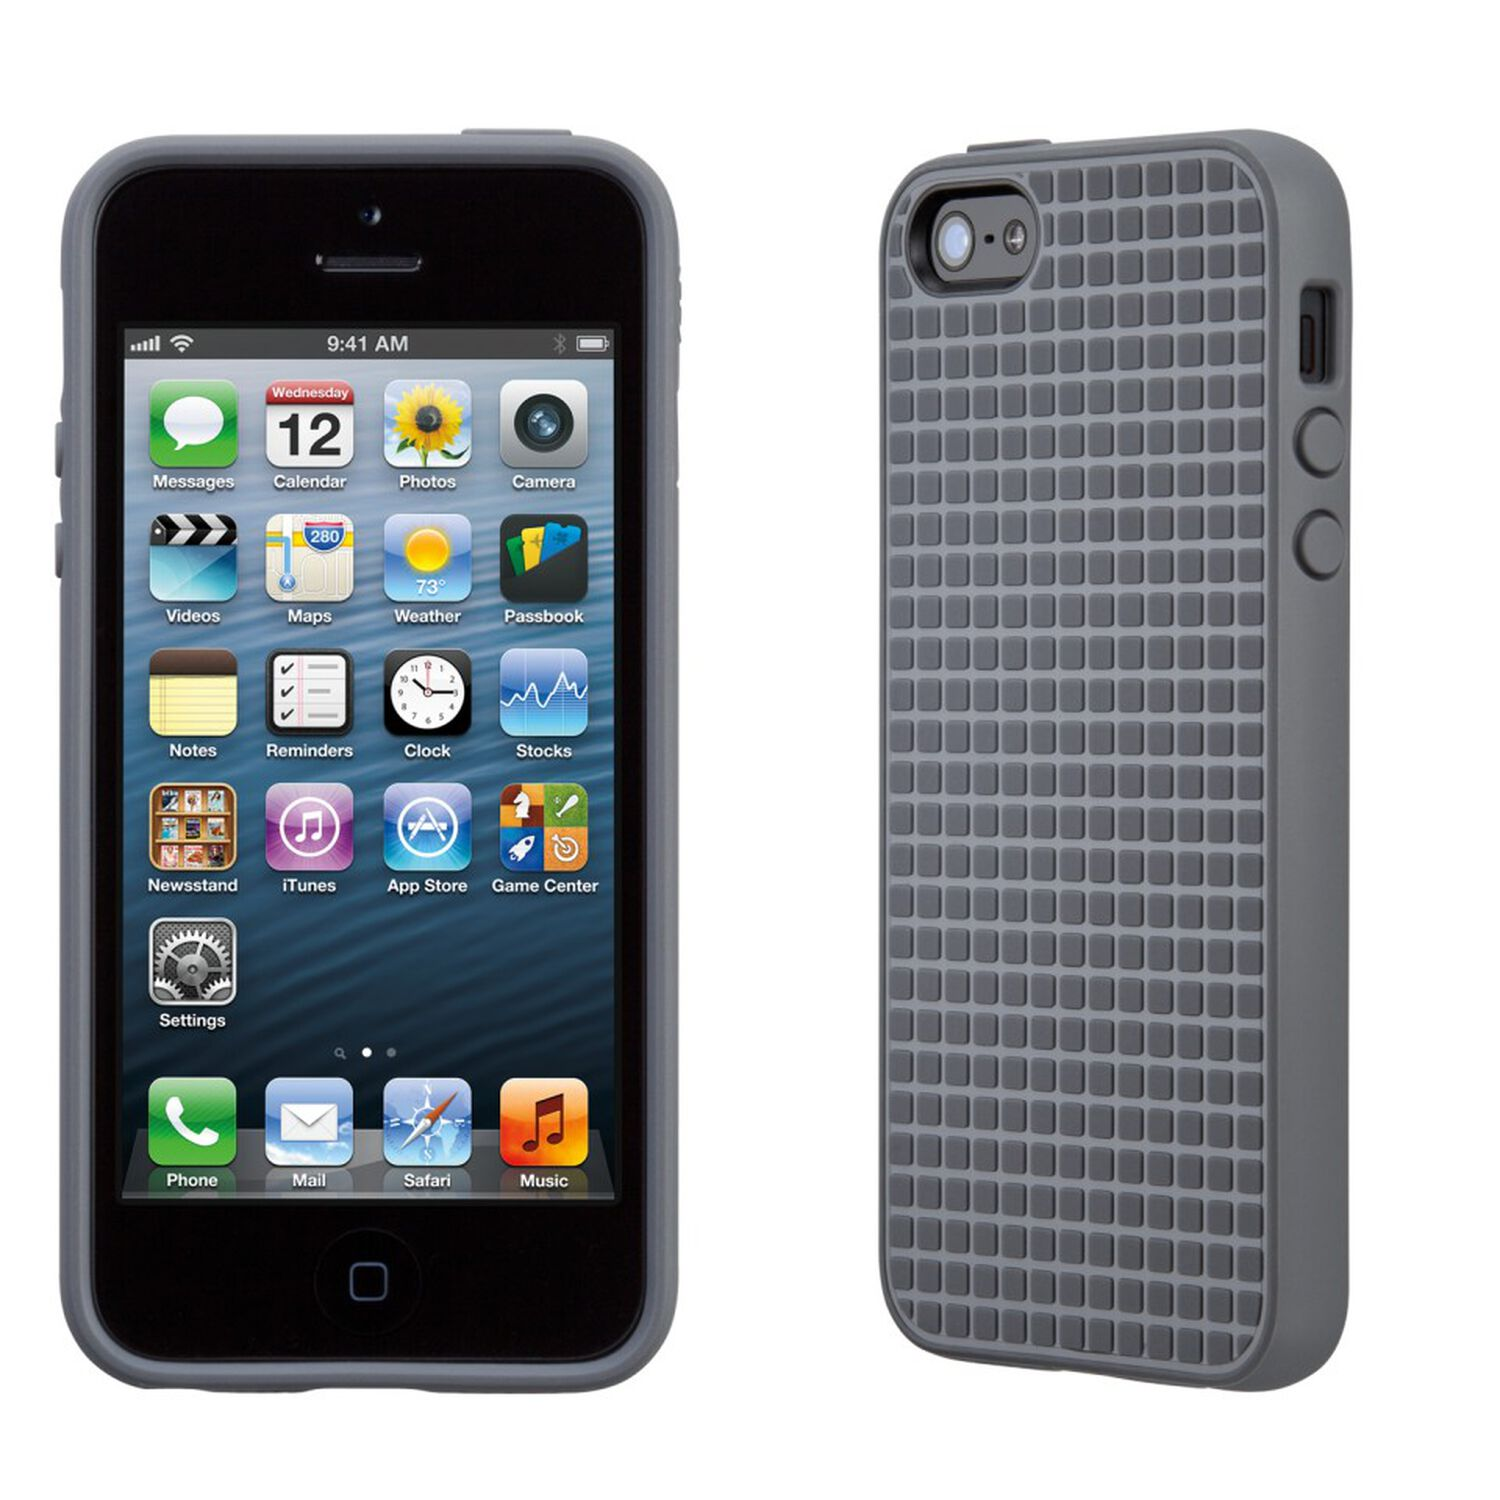 Pixelskin hd iphone se iphone 5s iphone 5 cases for Grove iphone 4 case